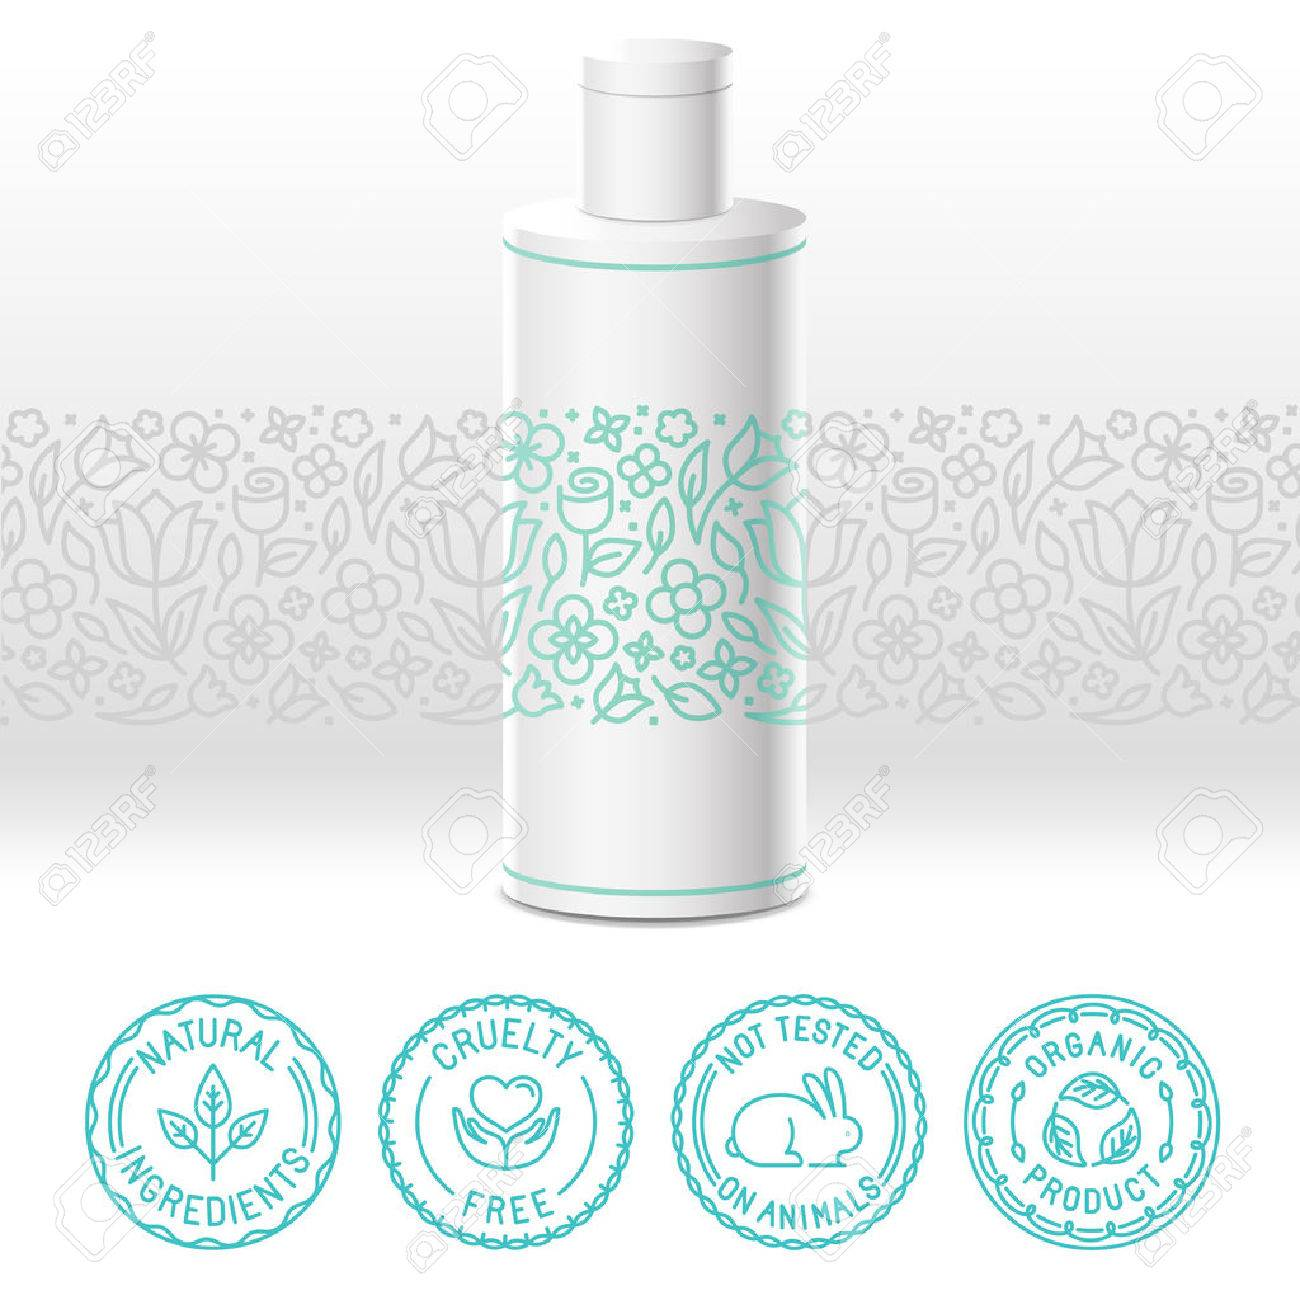 Vector design kit - set of design elements, icons and badges for natural and organic cosmetics in trendy linear style - packaging template with label with floral pattern - 55704214